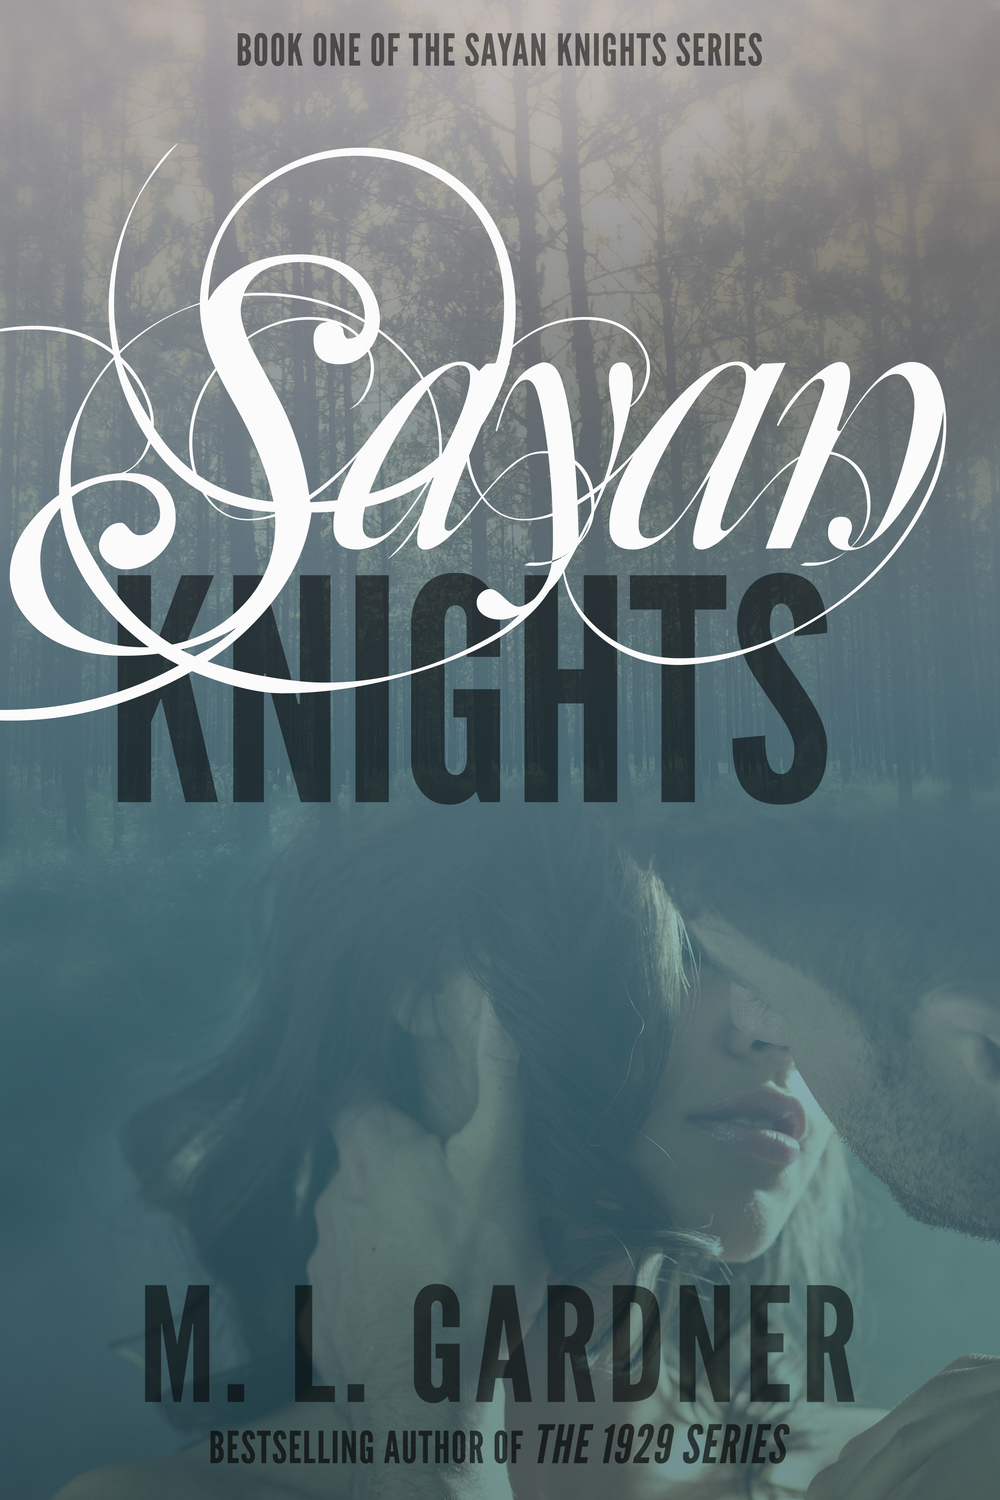 New cover for M.L. Gardner's Sayan Knights.